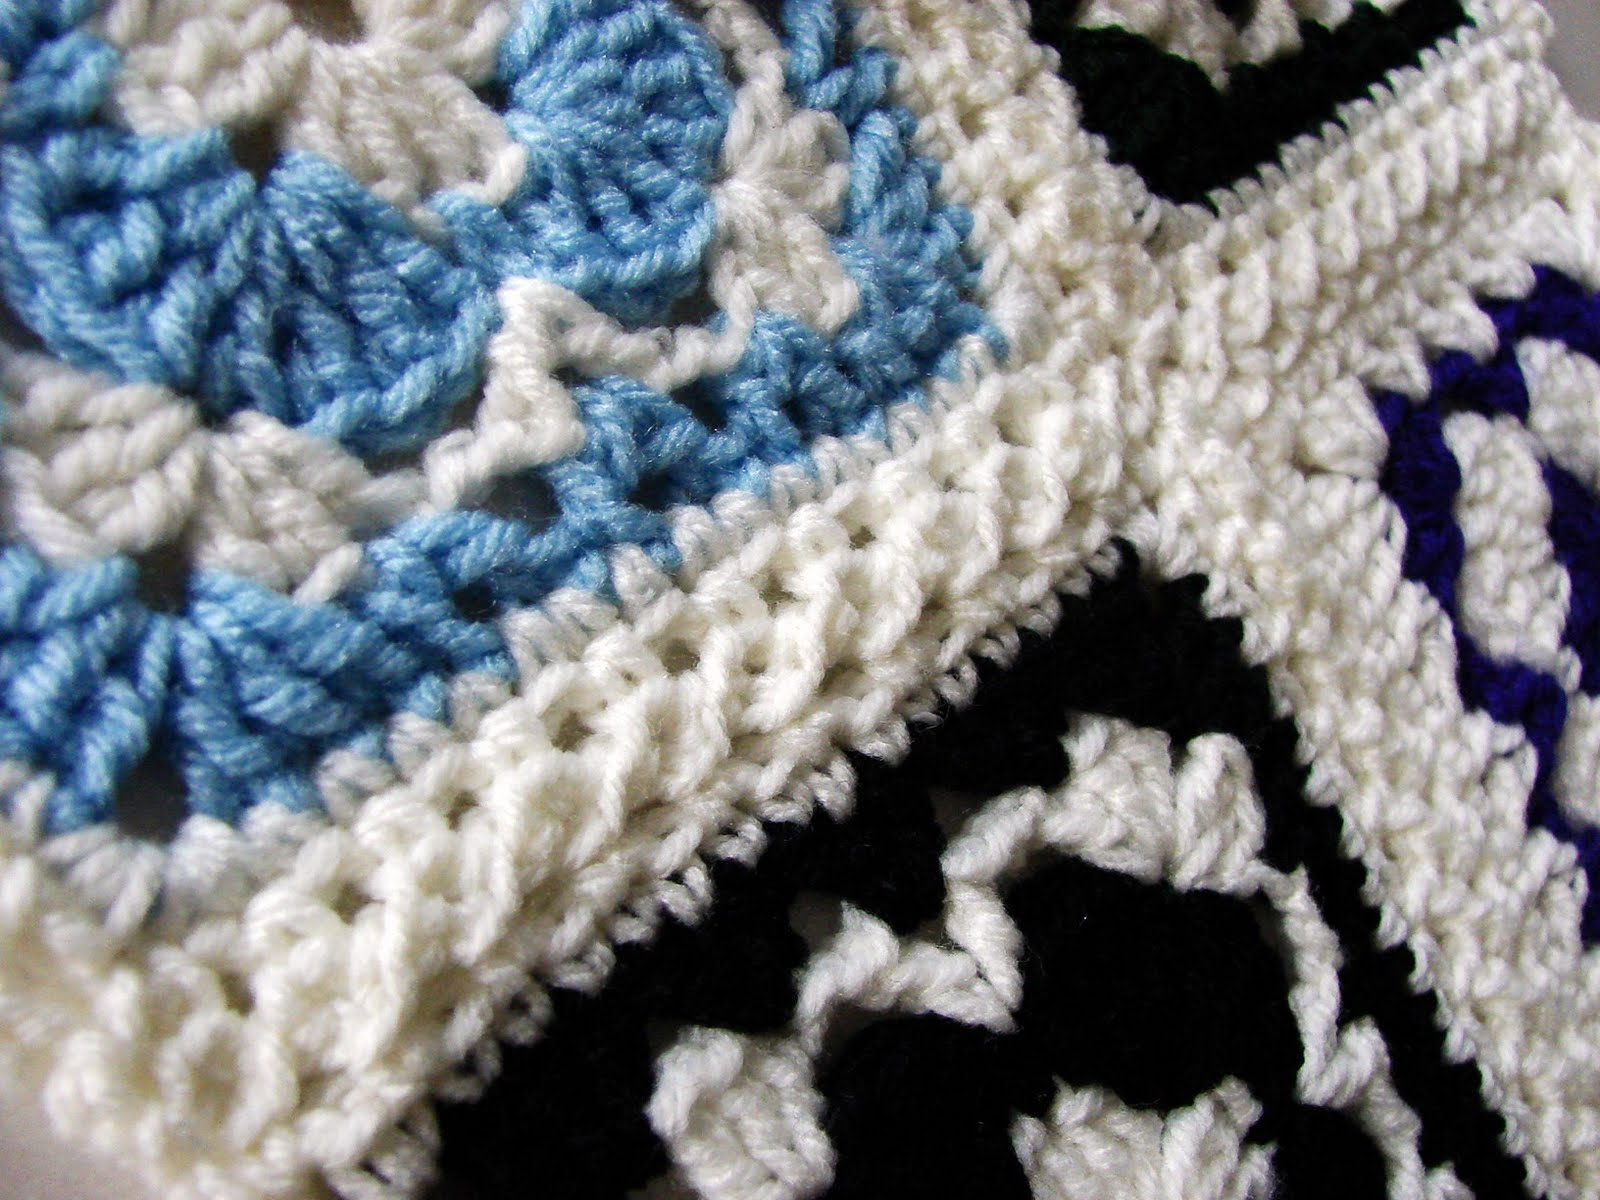 Crochet Stitches To Join Granny Squares : MyHobbyShop: April Crochet Challenge